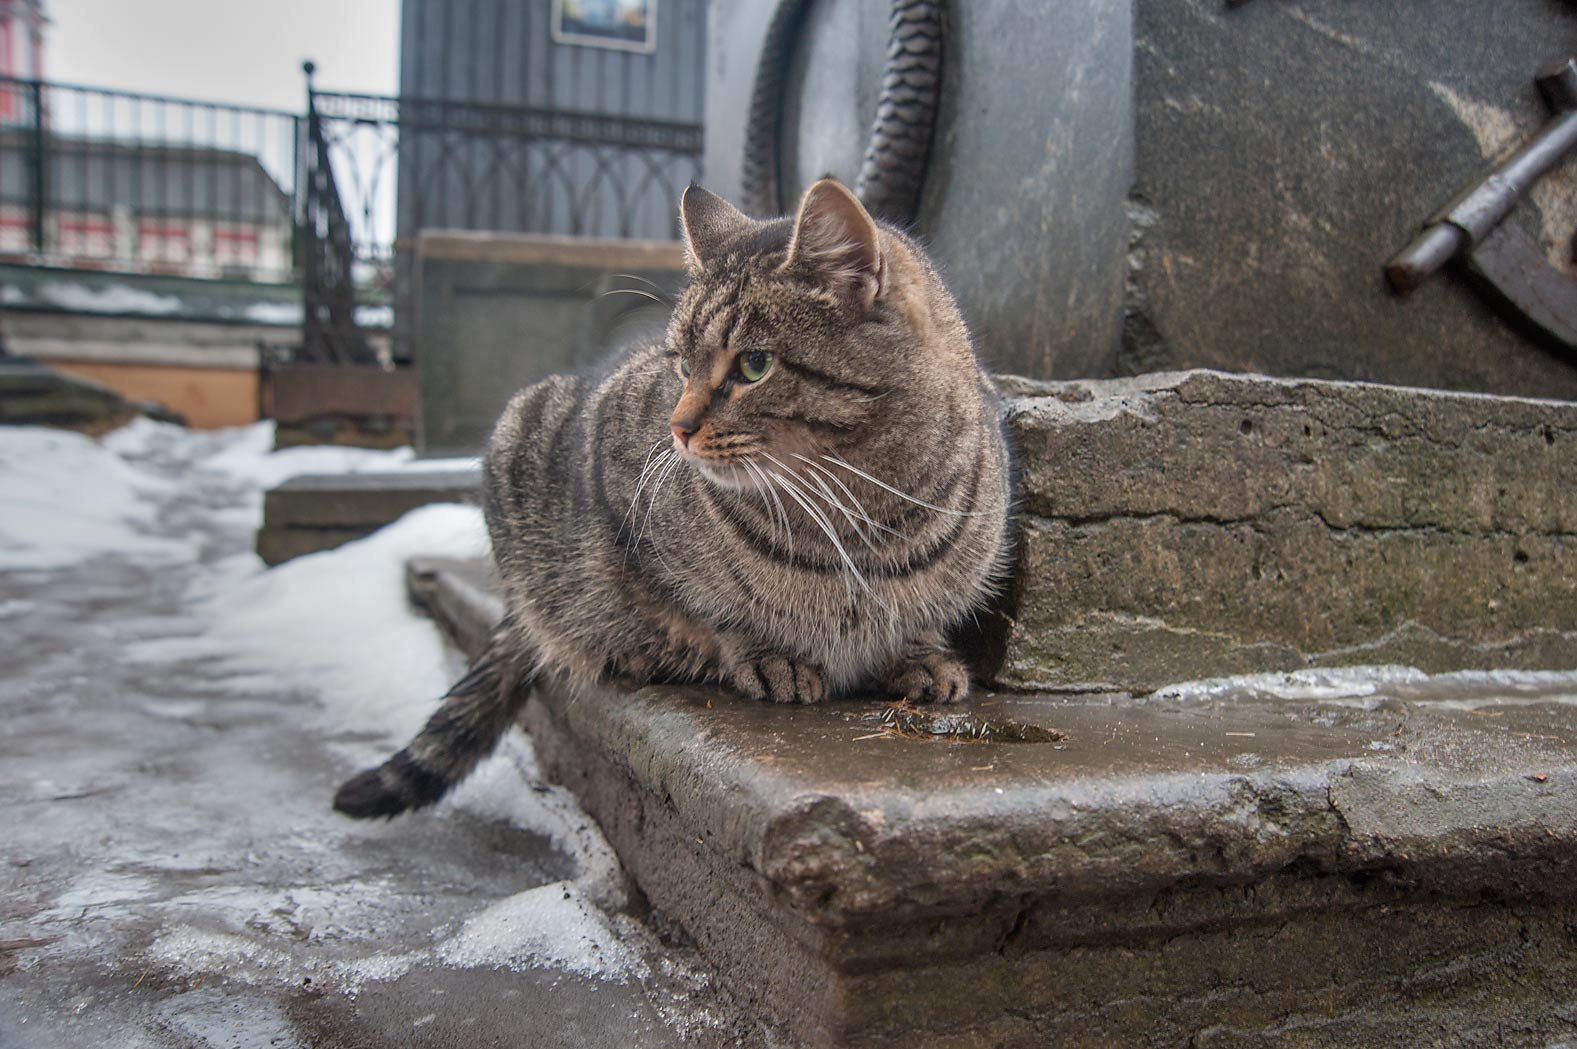 Tabby cat in Necropolis of Alexander Nevsky Lavra...Cemetery). St.Petersburg, Russia